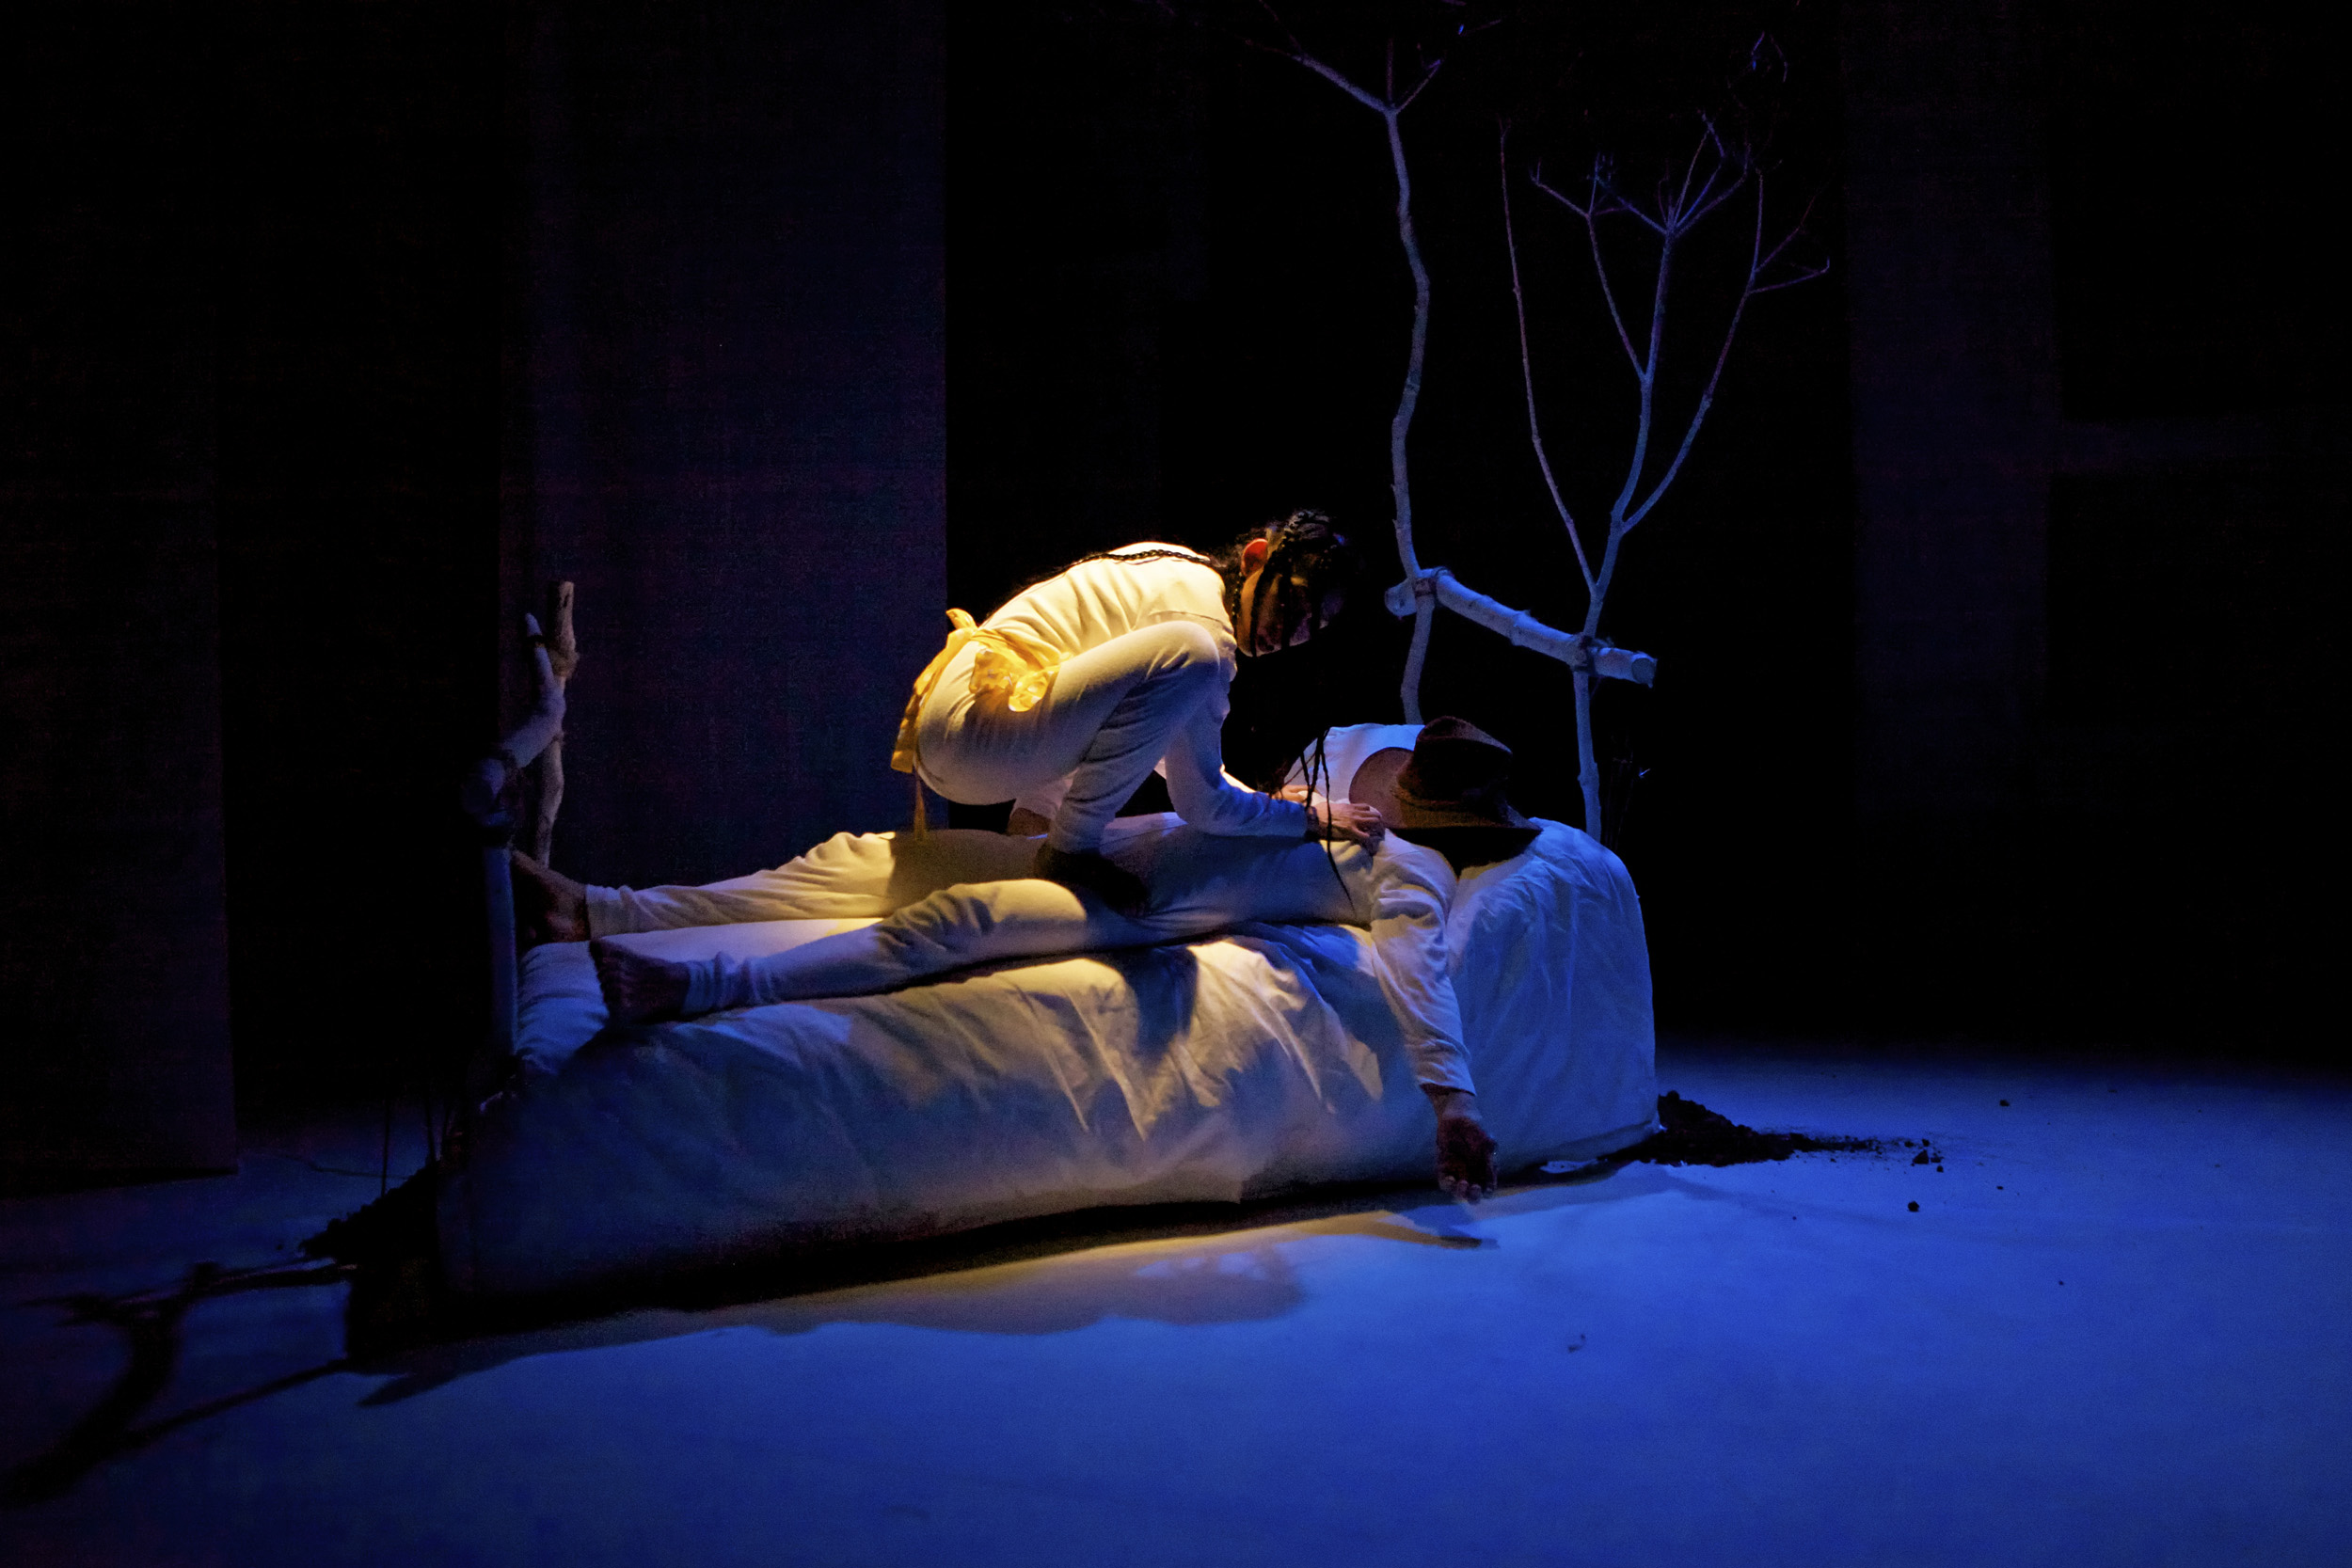 line-between-inkboat-odc-theater-allen-willner-lighting-bed.jpg